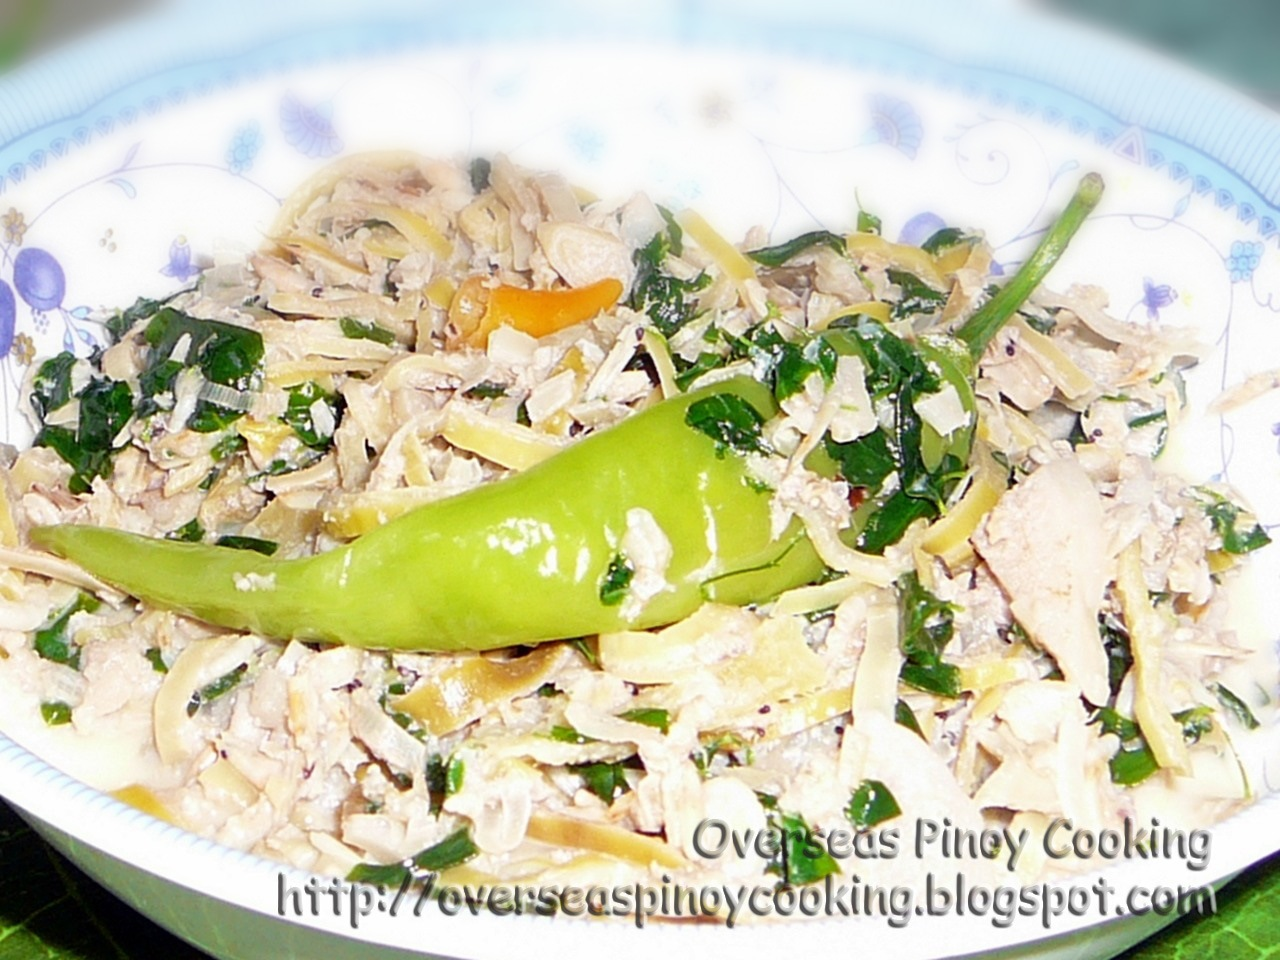 Read more at Overseas Pinoy Cooking